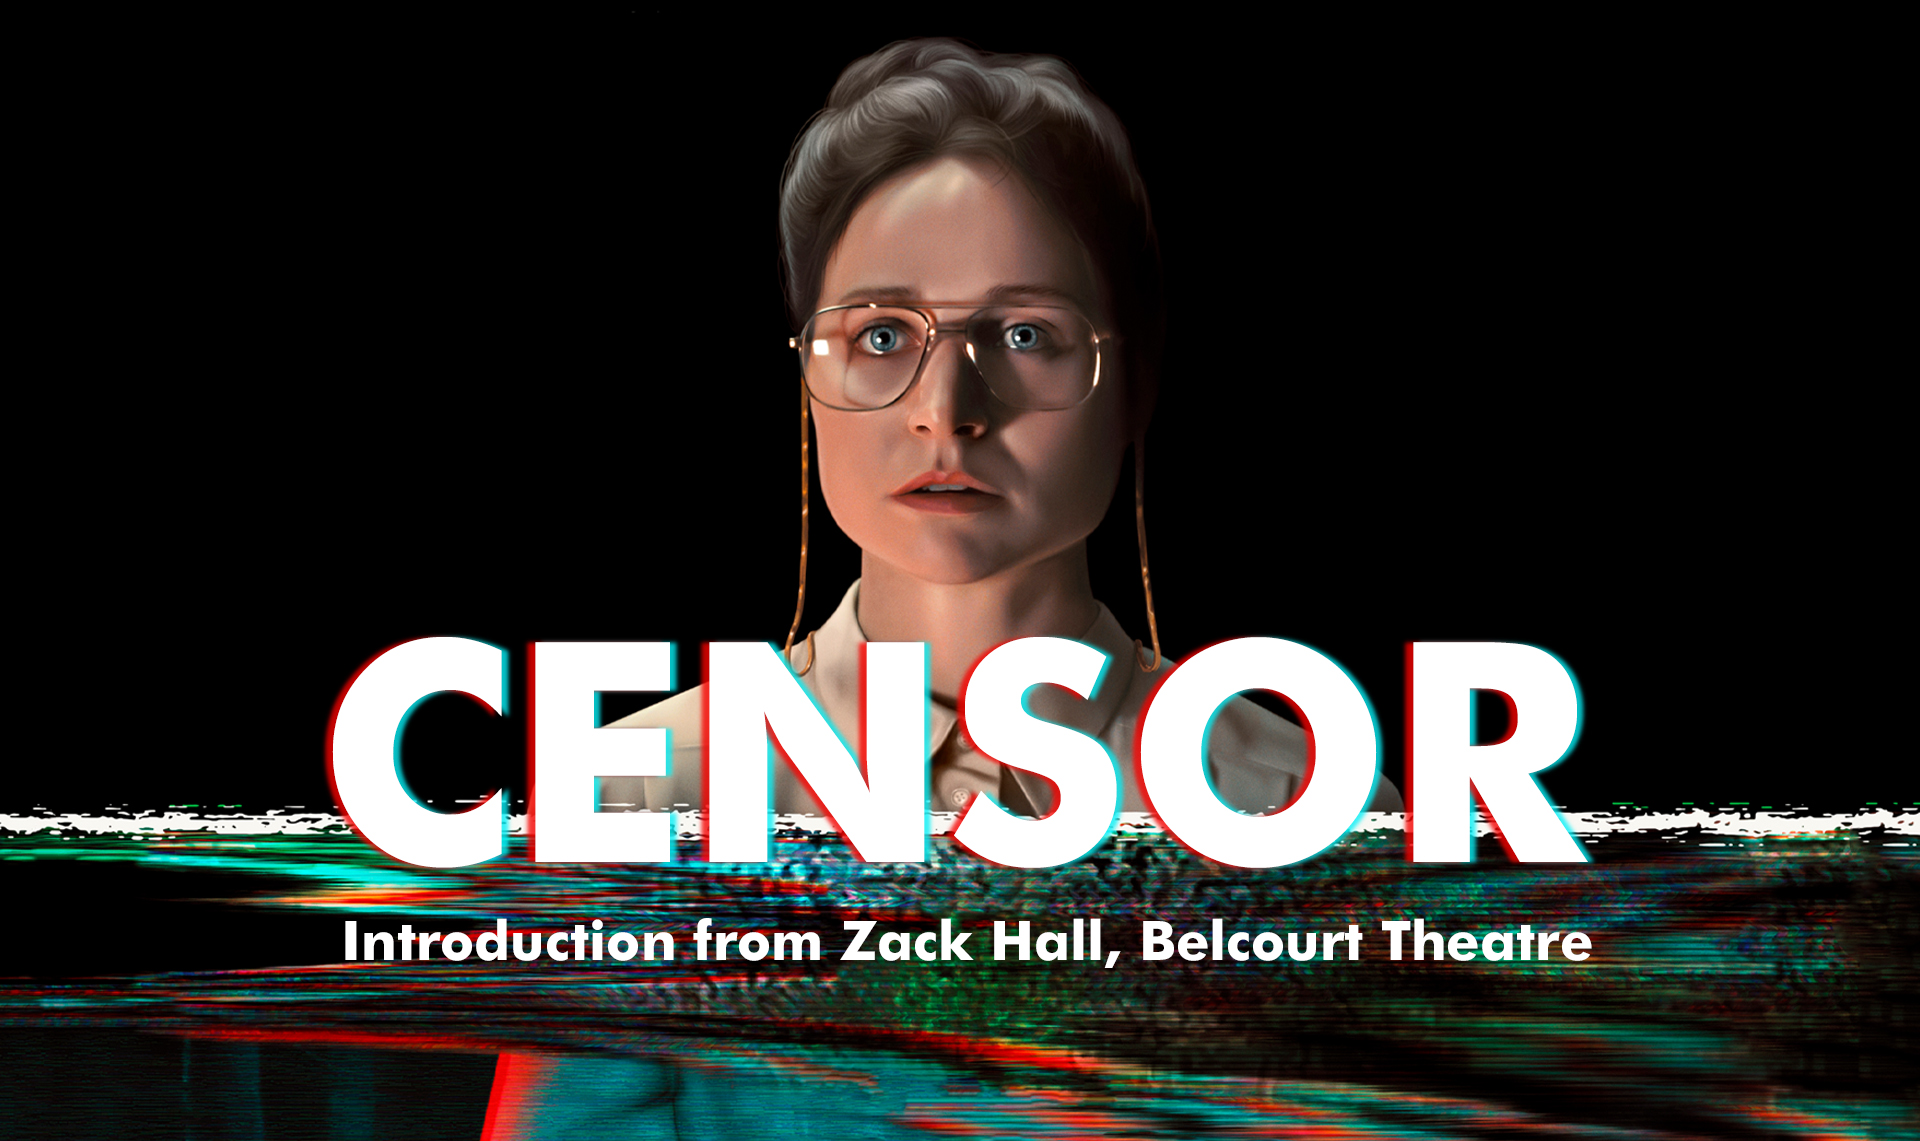 CENSOR: Introduction from Zack Hall, Belcourt Theatre (8:20pm)